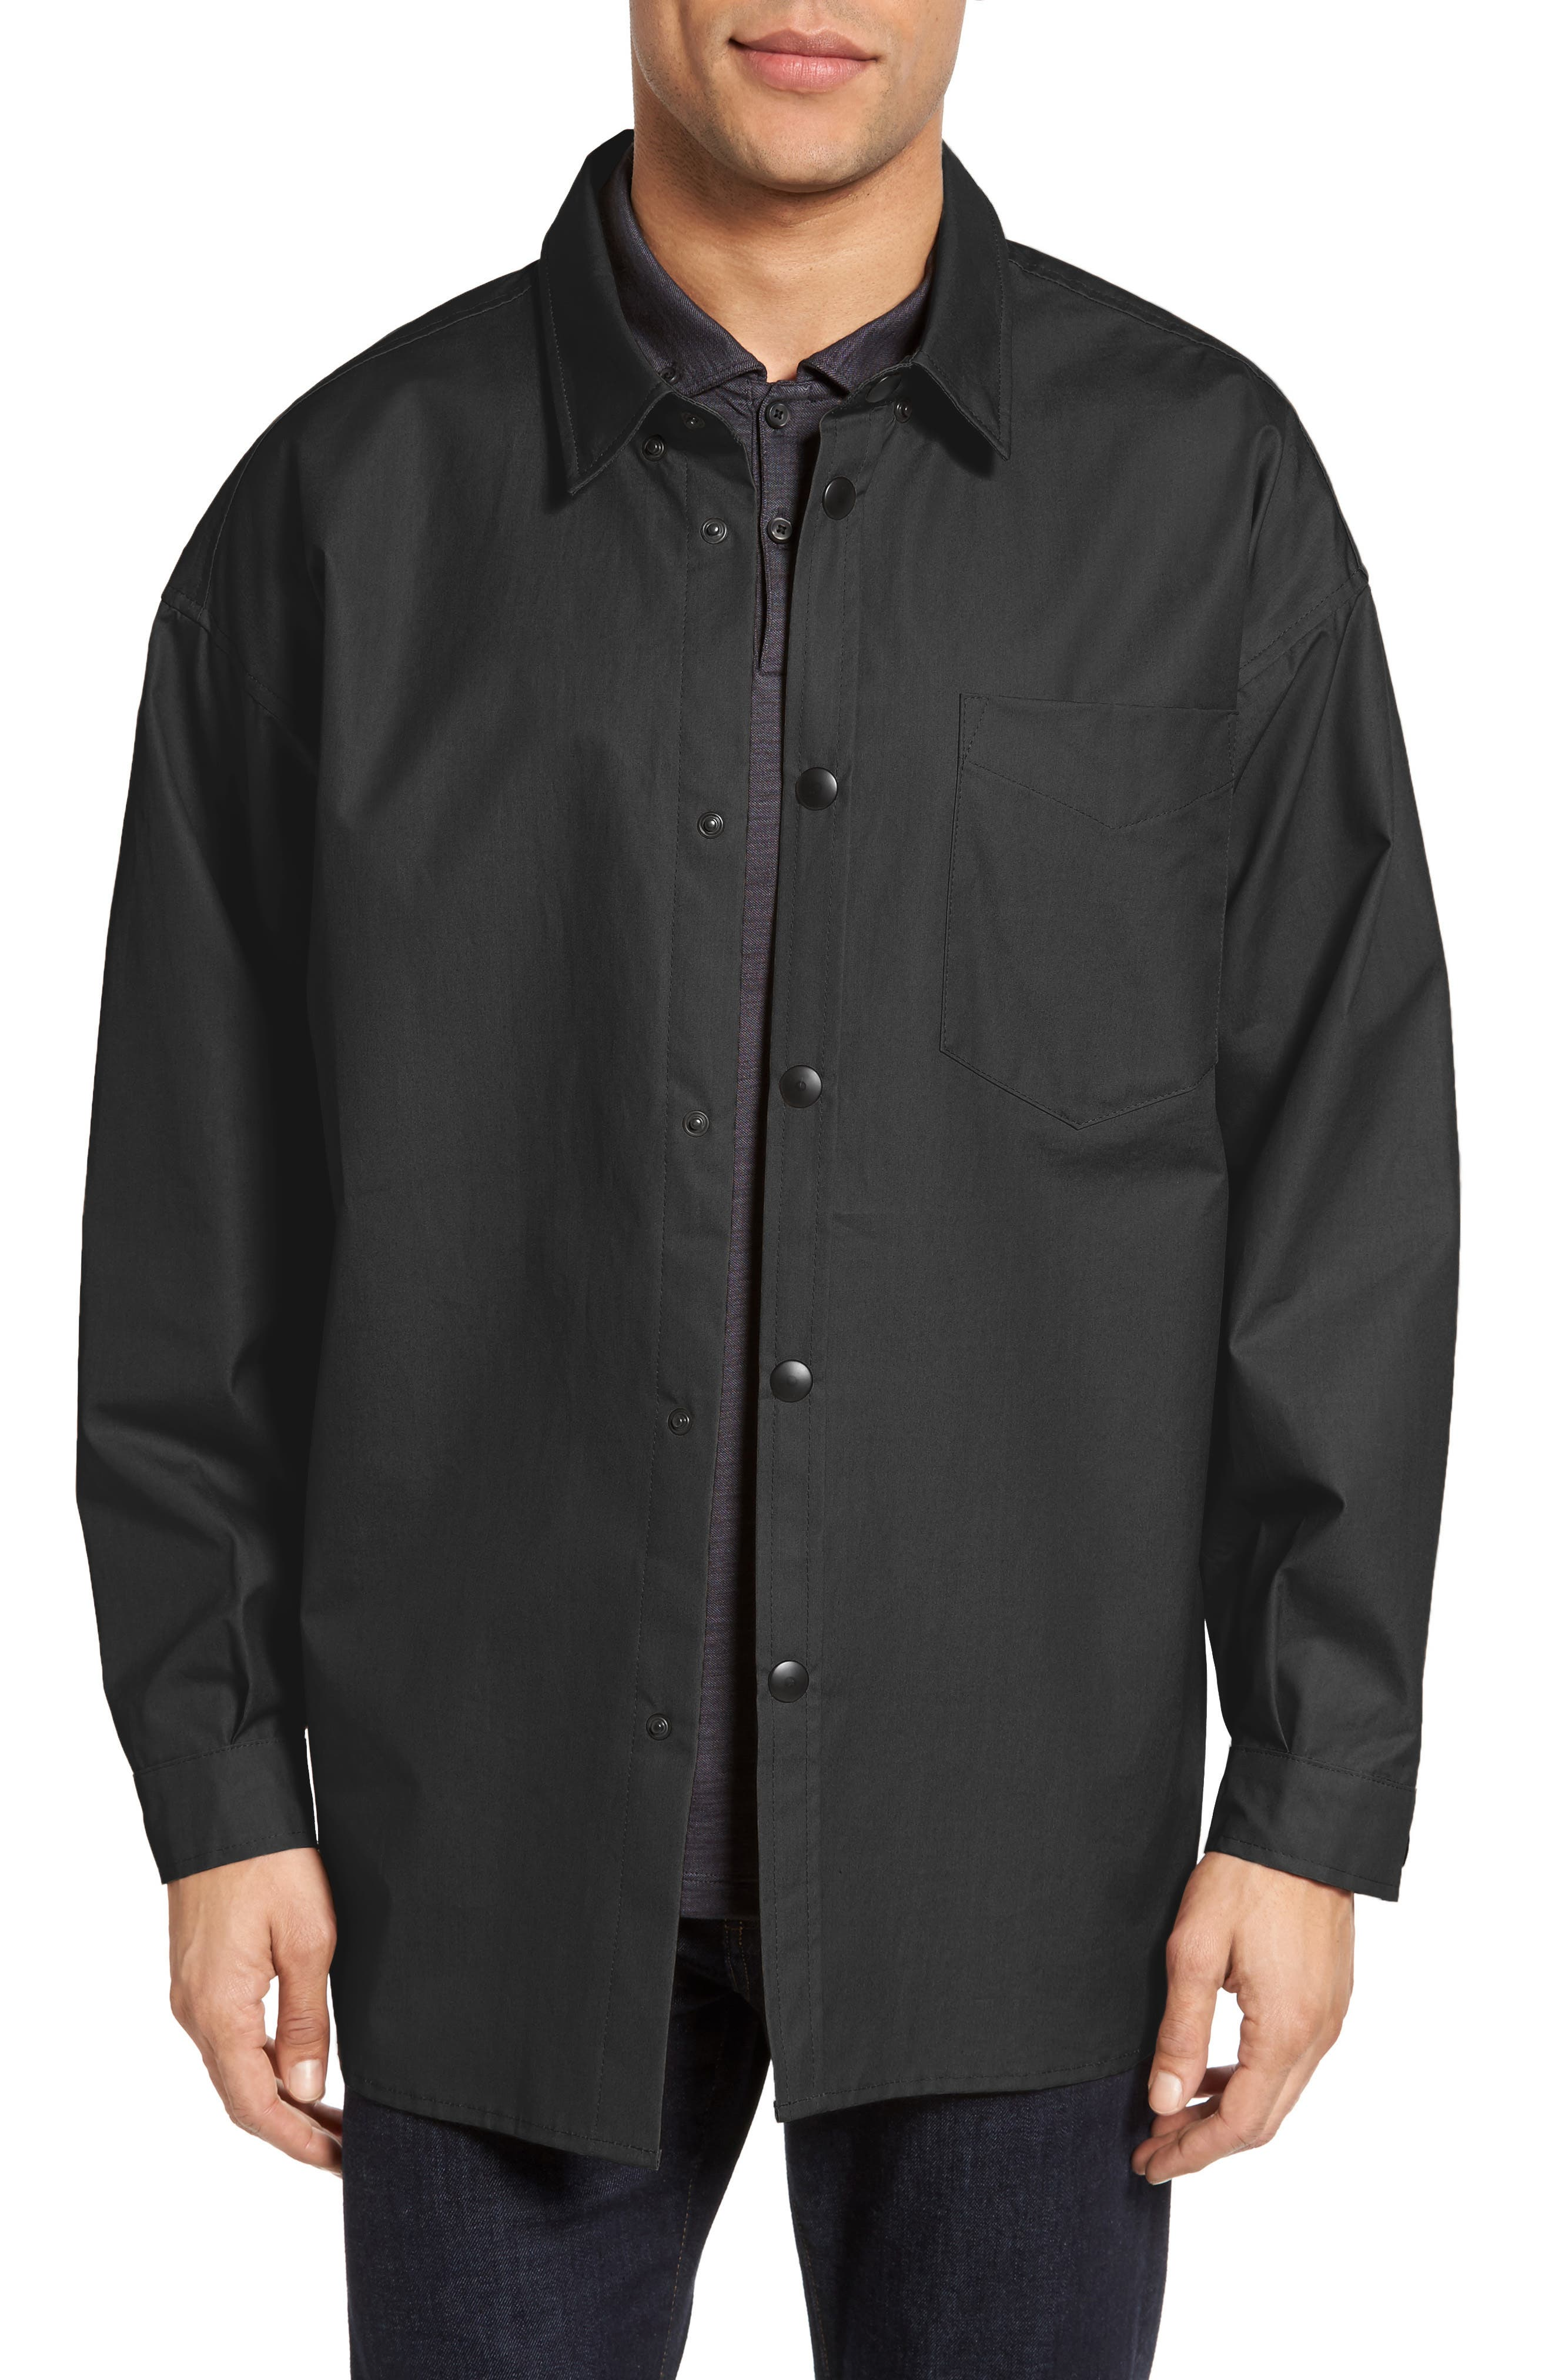 Lerum Relaxed Fit Shirt Jacket,                         Main,                         color, Black